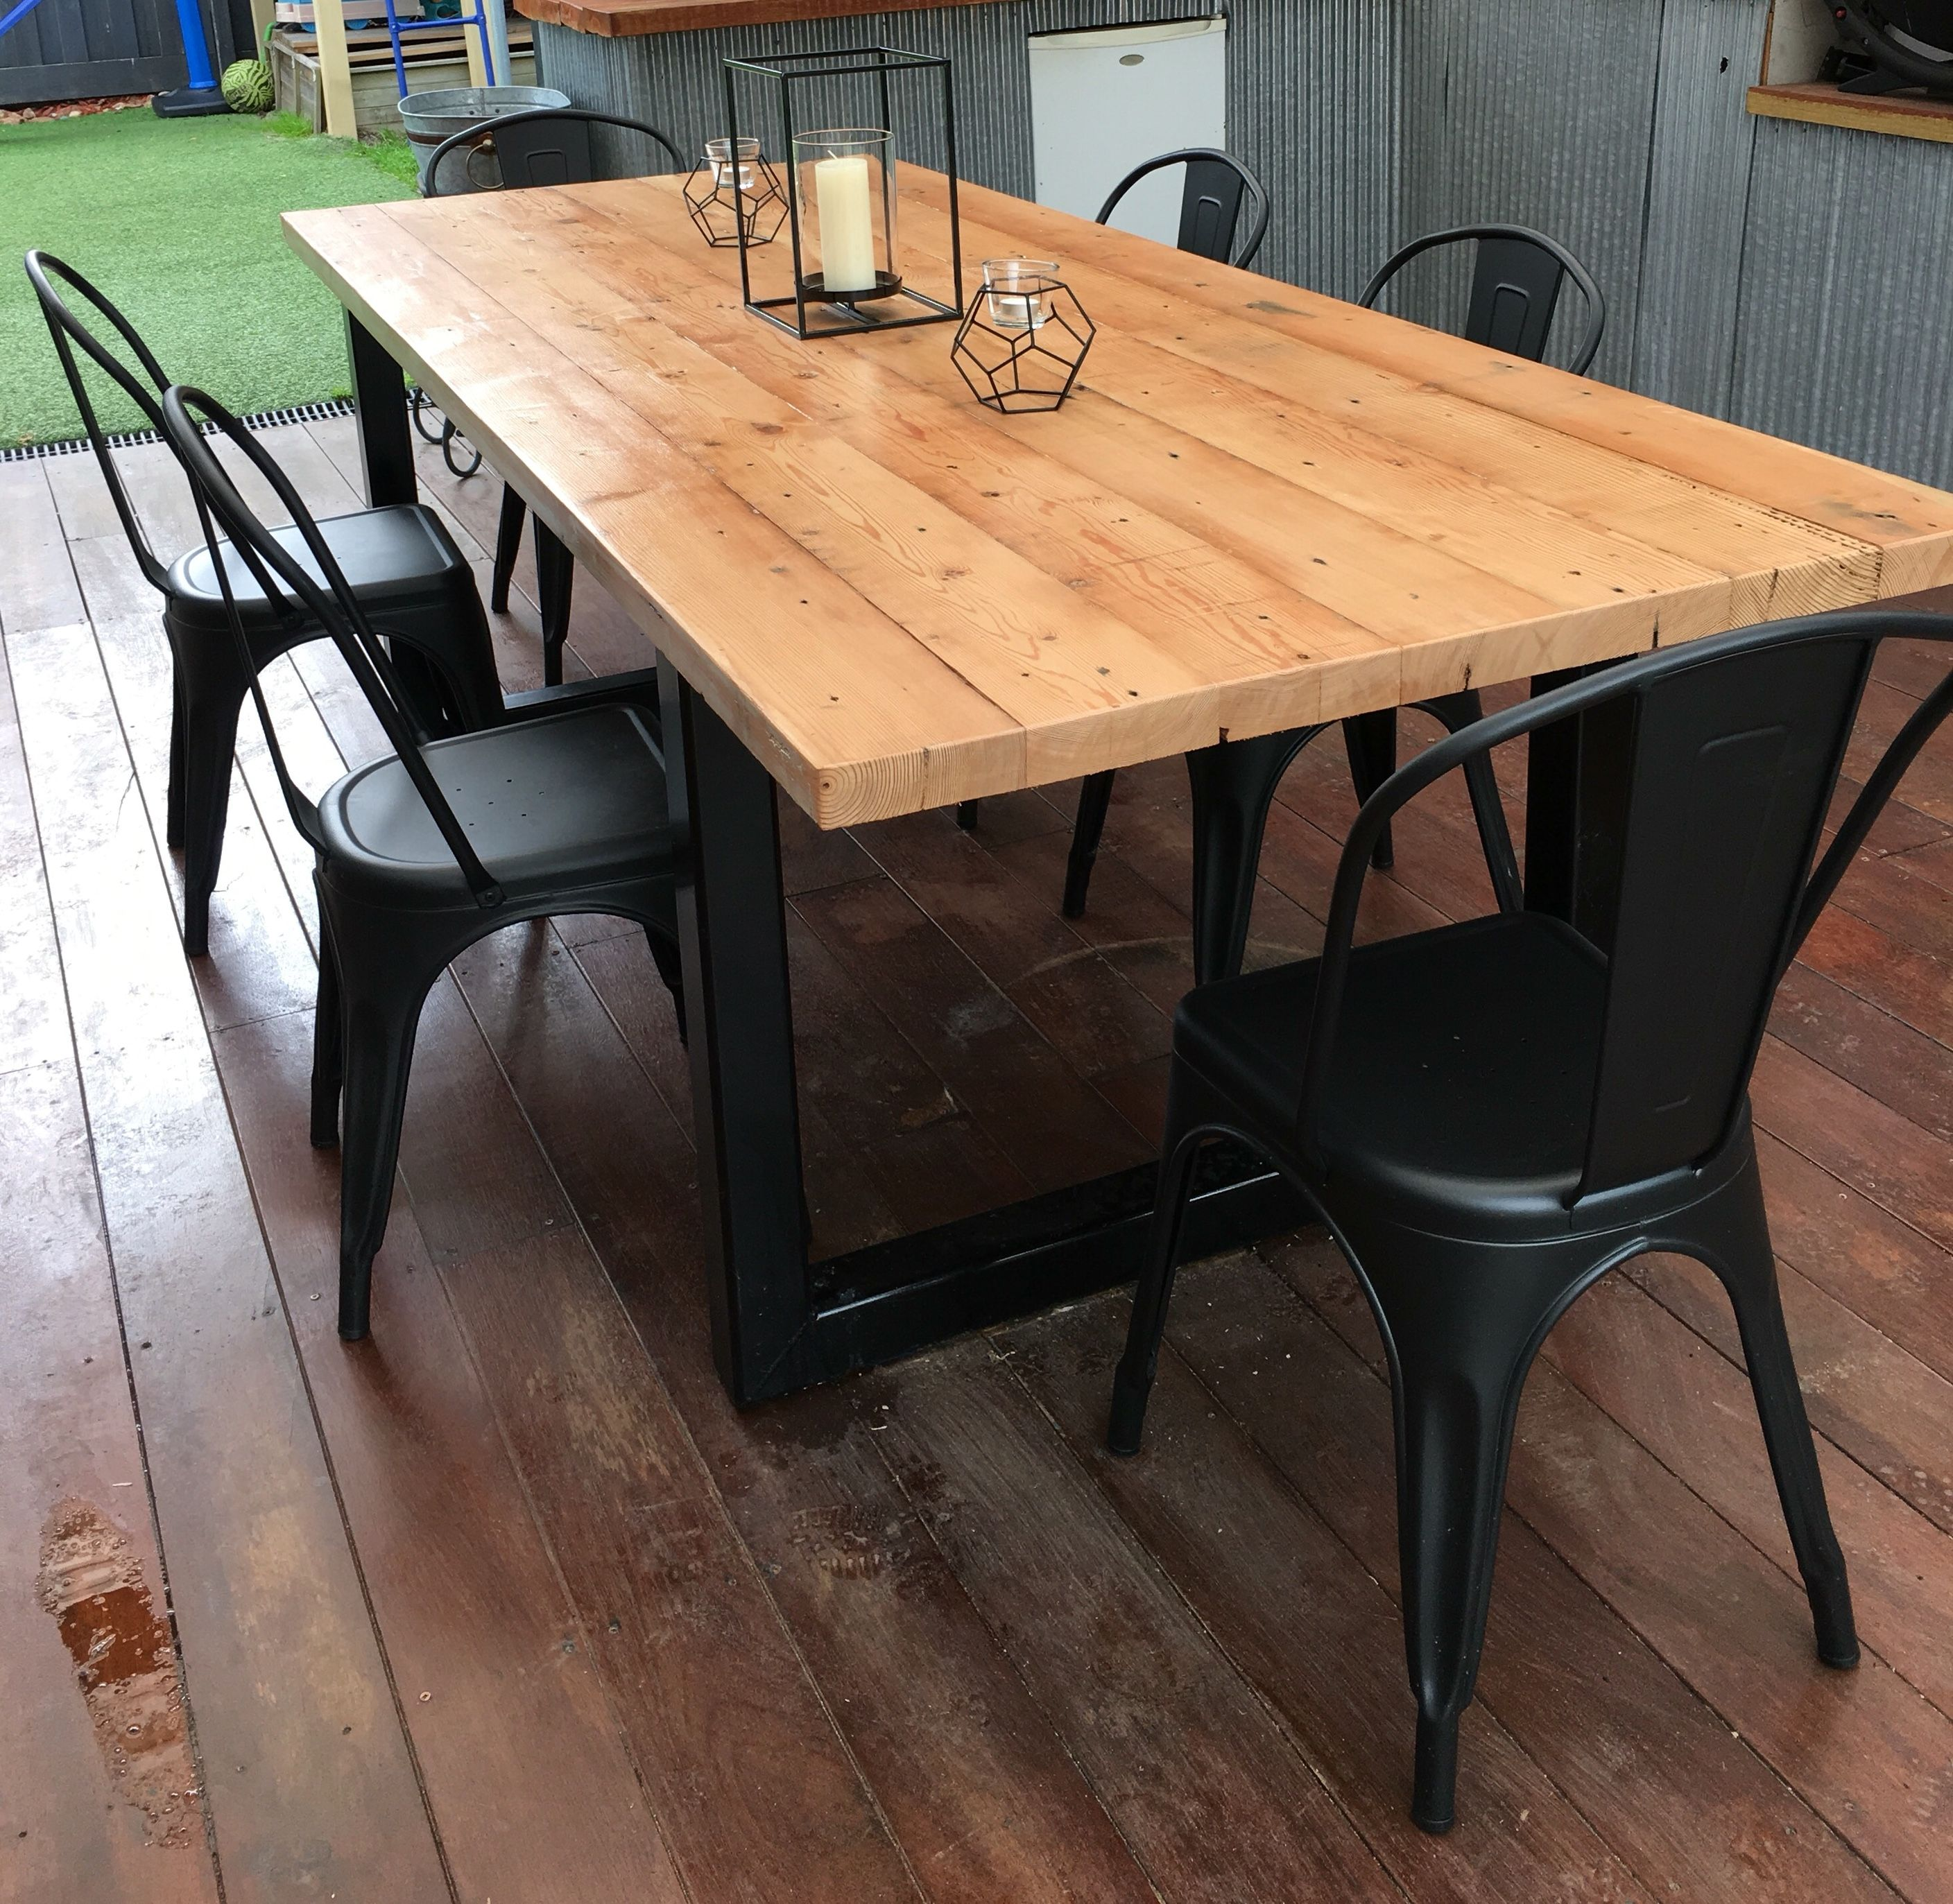 Timber Dining Tables Adelaide Recycled Oregon Industrial Dining Table Made By